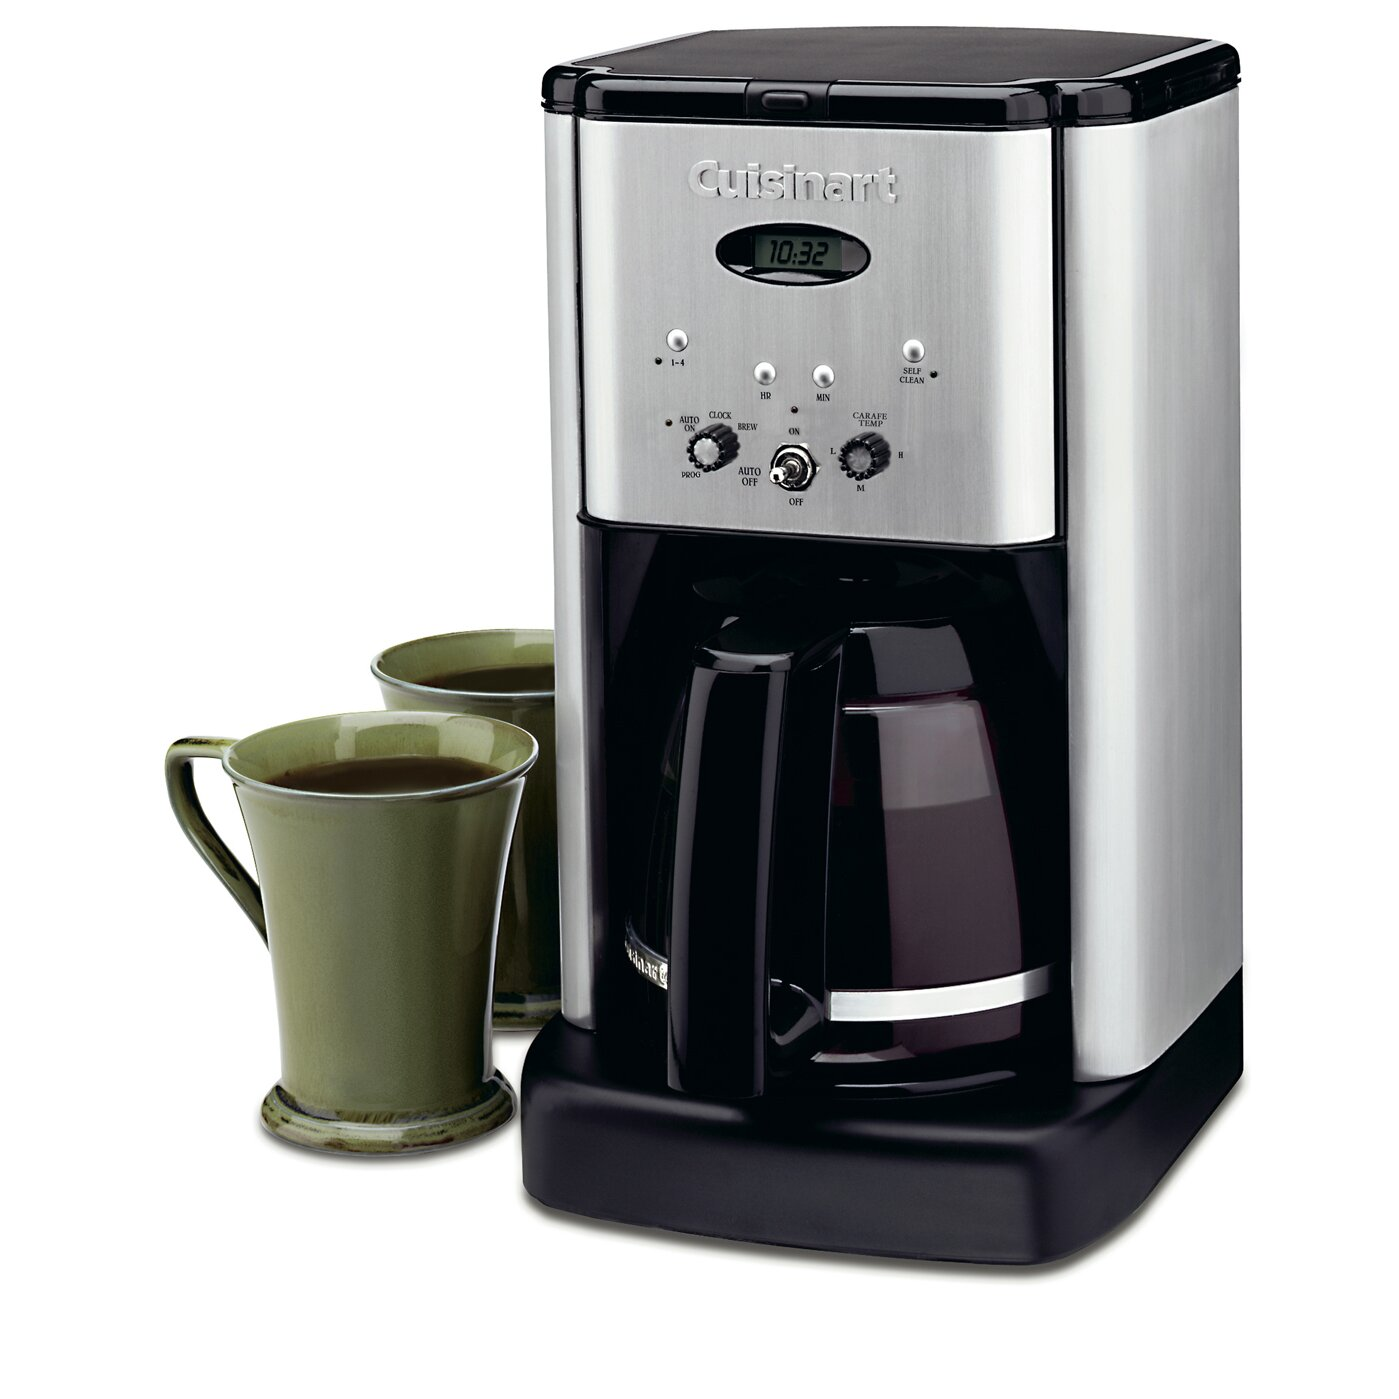 Black and decker 12 cup programmable coffee maker - Cuisinart 12 Cup Brew Central Programmable Coffee Maker